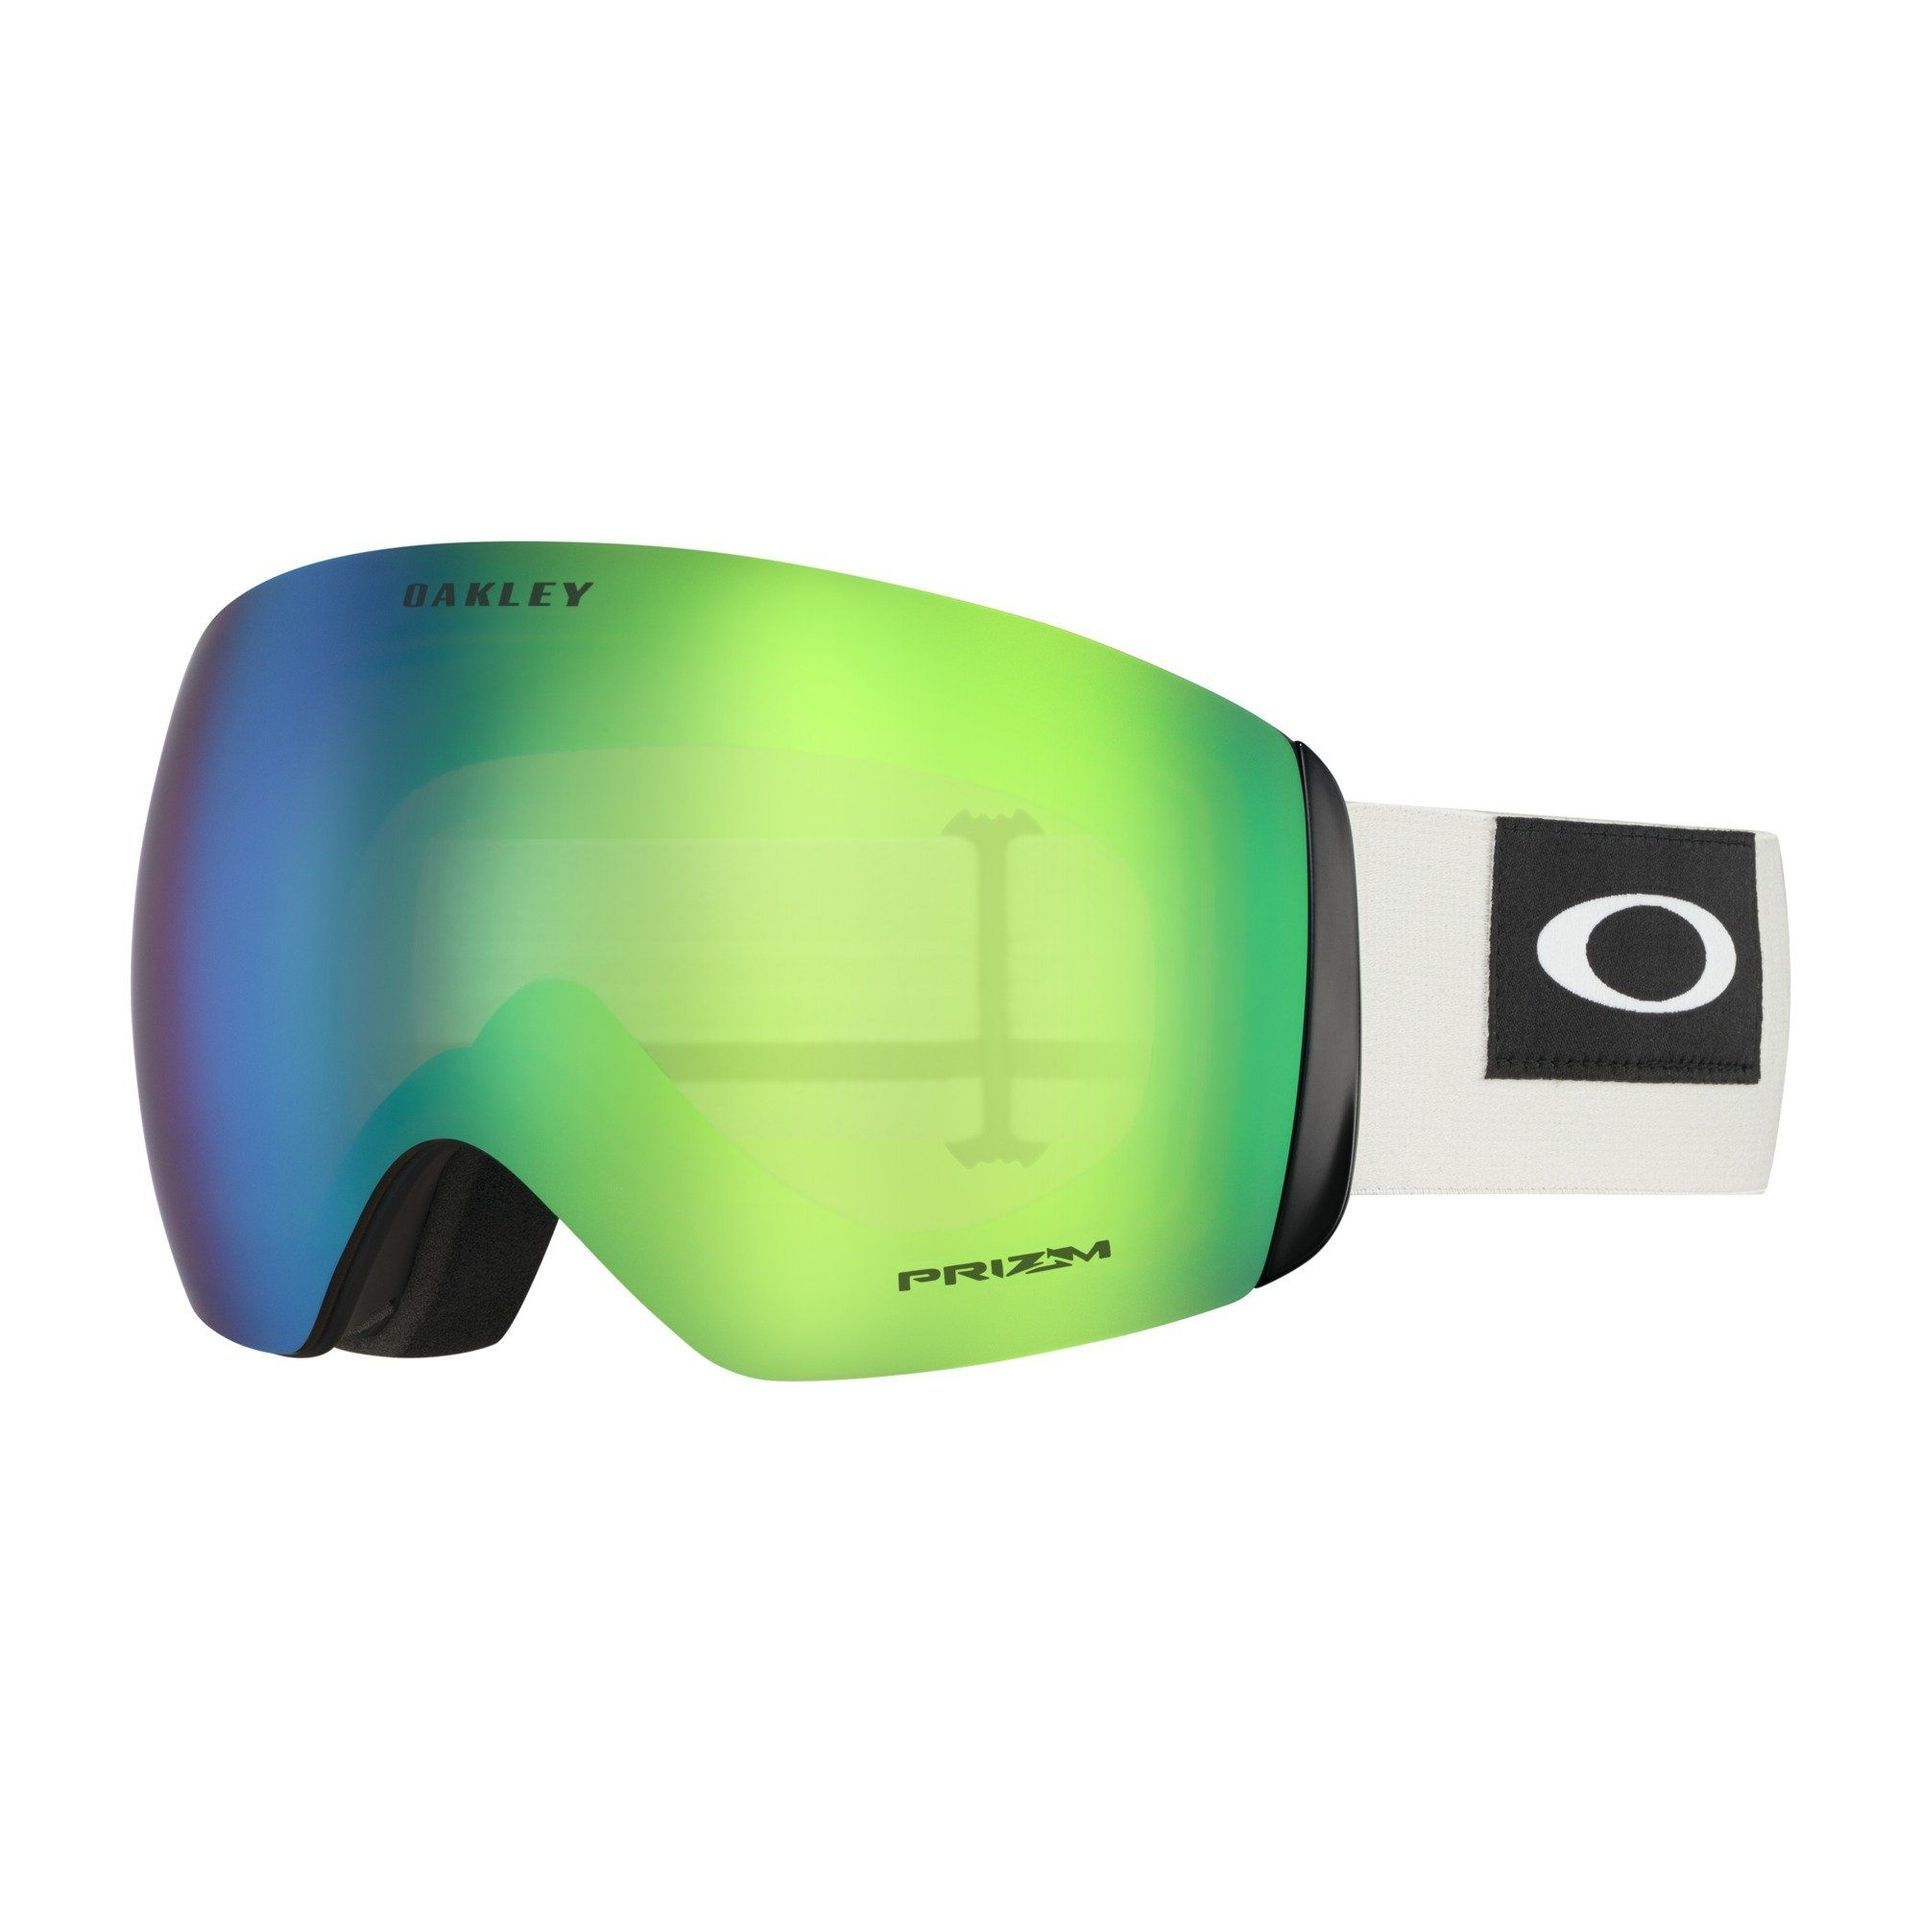 GOGLE OAKLEY FLIGHT DECK BLOCKEDOUT DARK BRUSH GREY|PRIZM SNOW JADE IRIDIUM 1